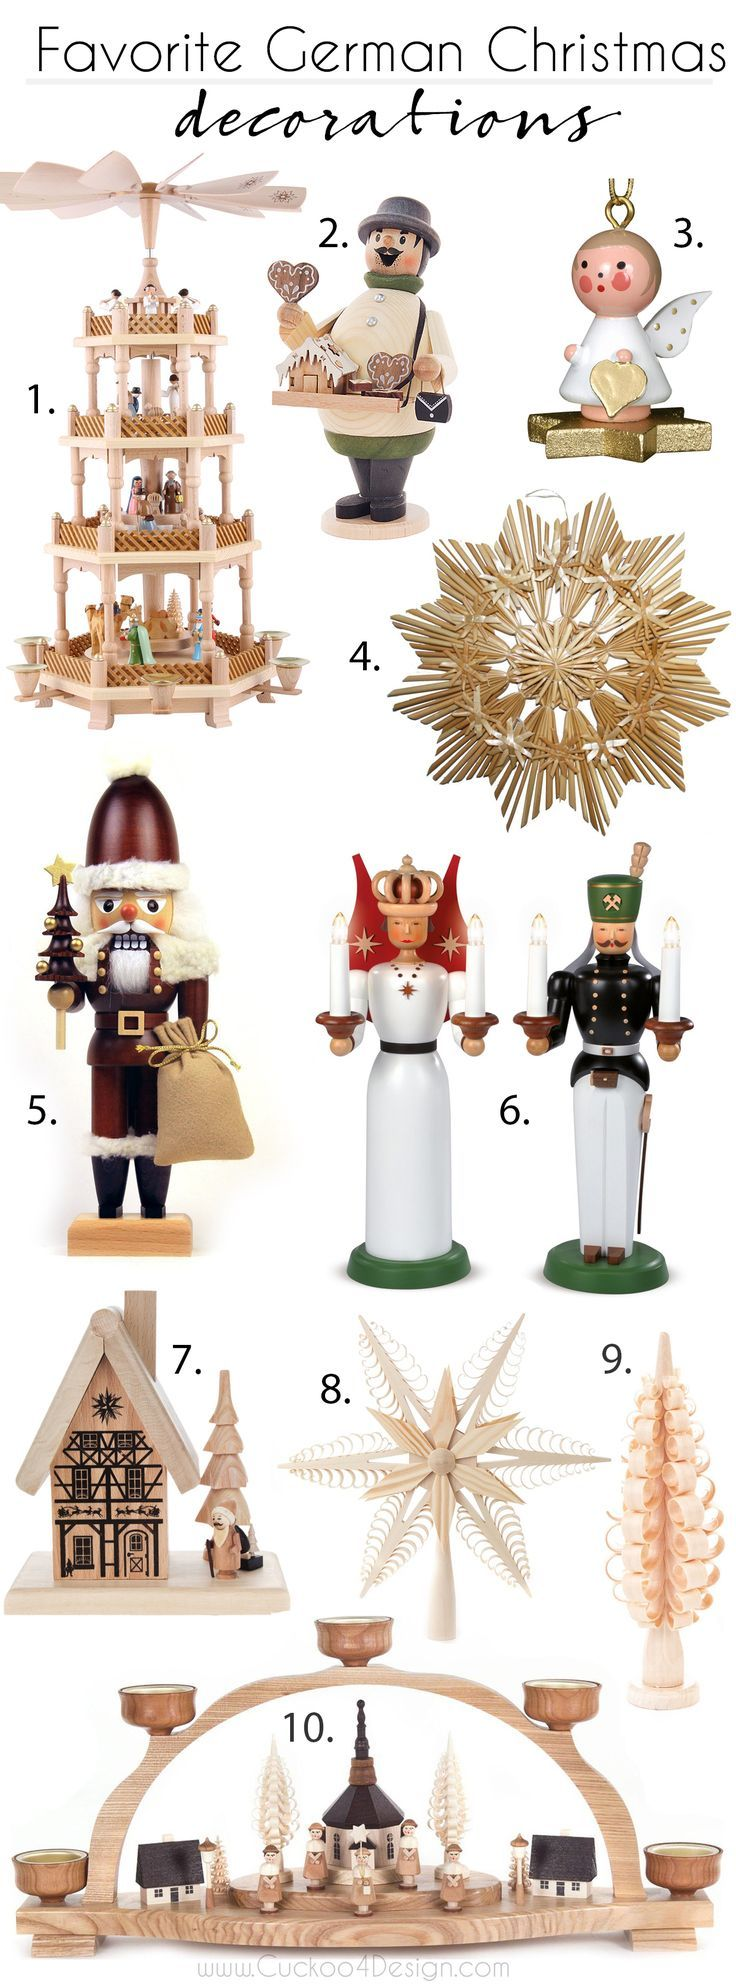 favorite German Christmas Decorations: candle arches, nut crackers, incense smokers, Christmas pyramids, shaved trees and star stars and ornaments via @jakonya